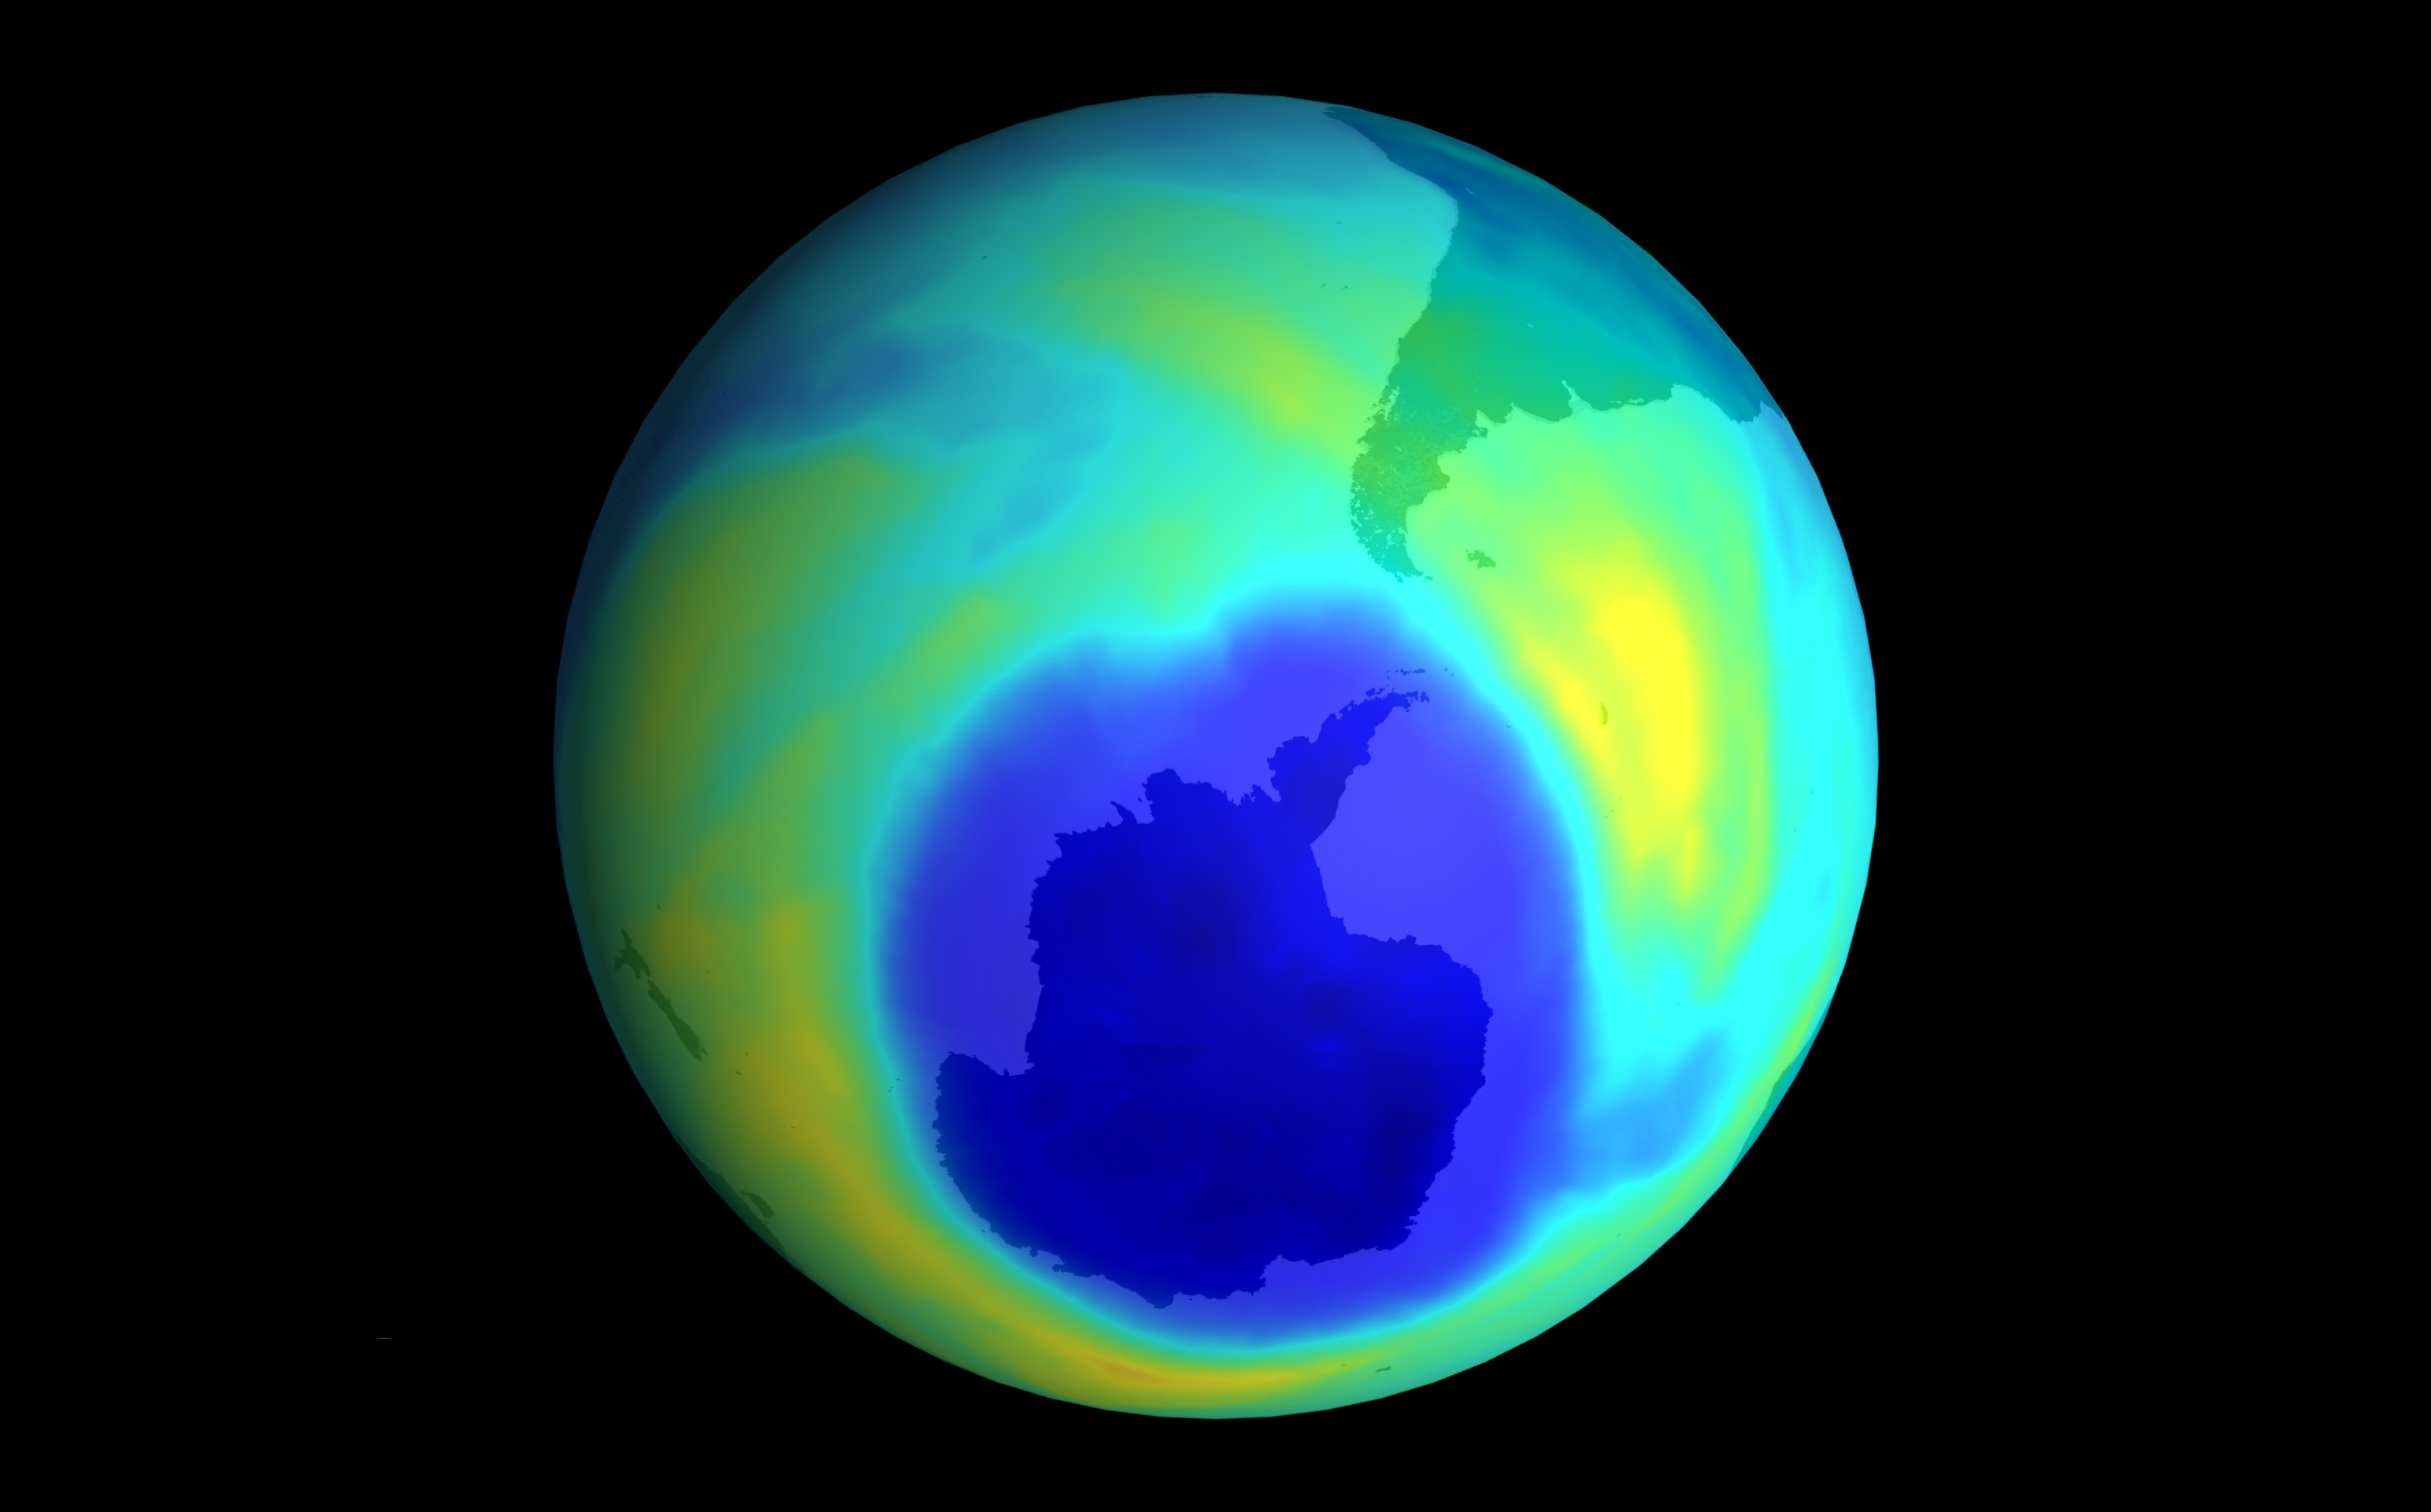 Ozone hole over Antarctic in 2001